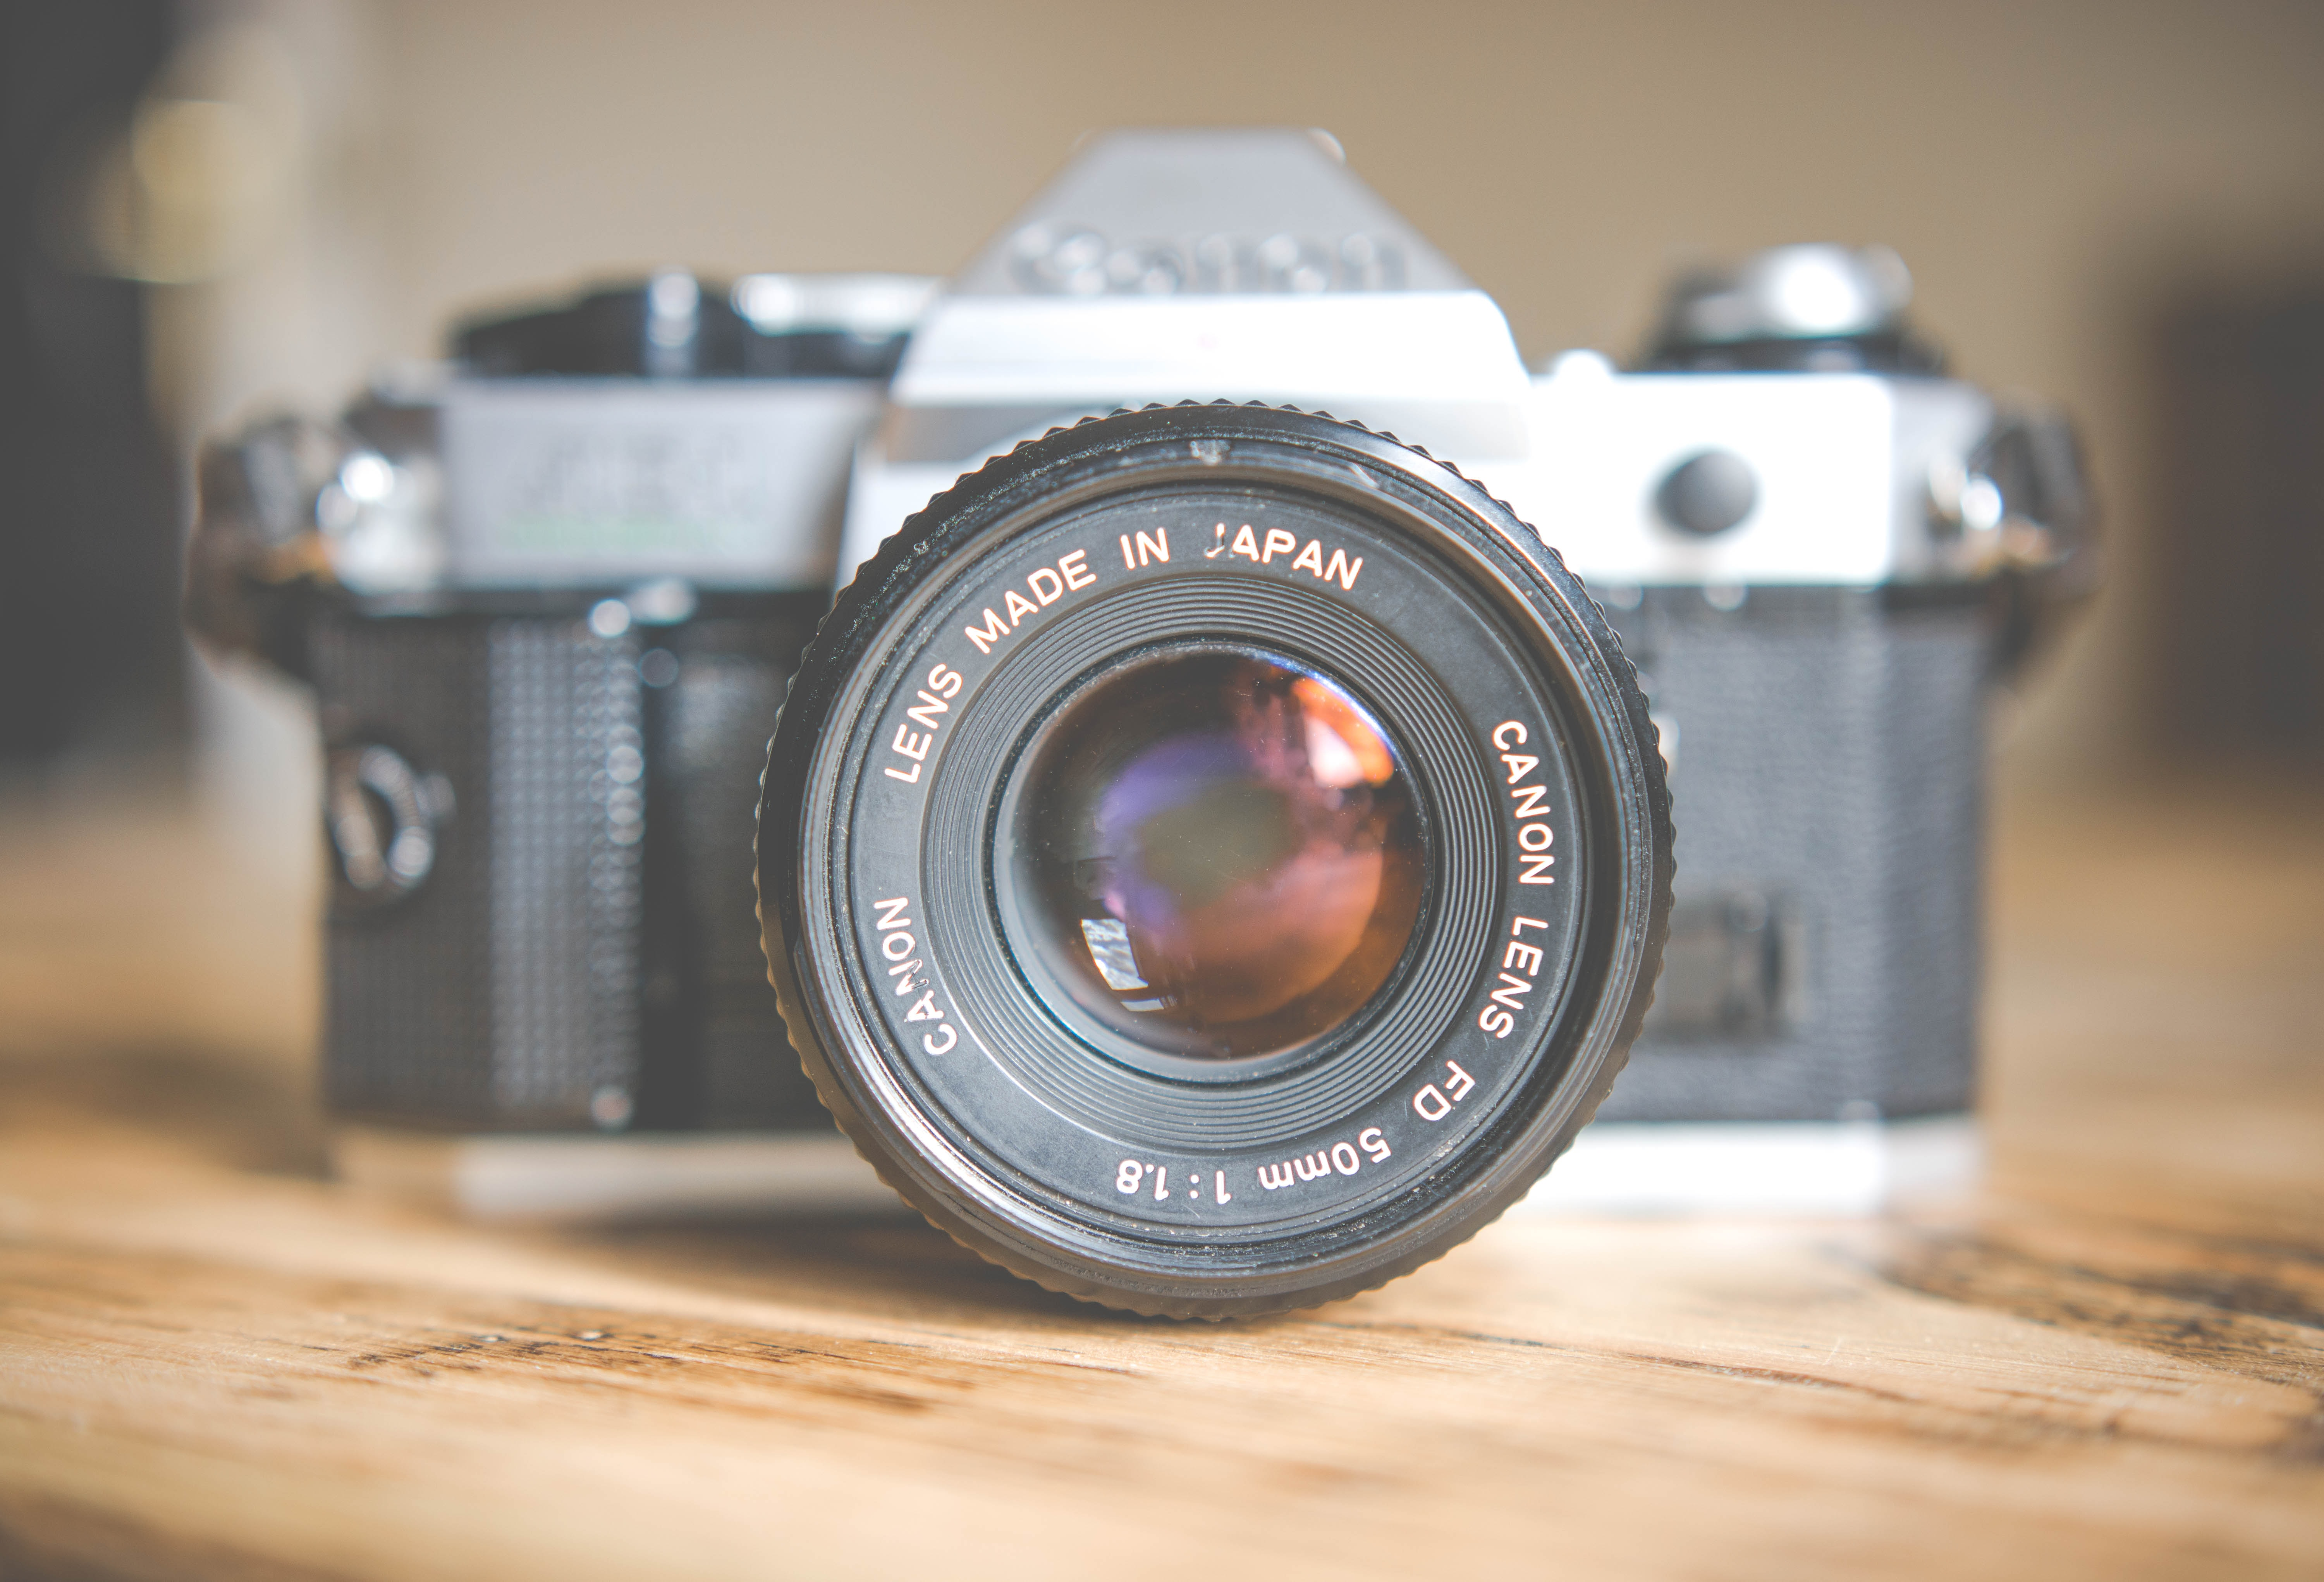 Canon lens on a vintage canon camera on a wooden surface